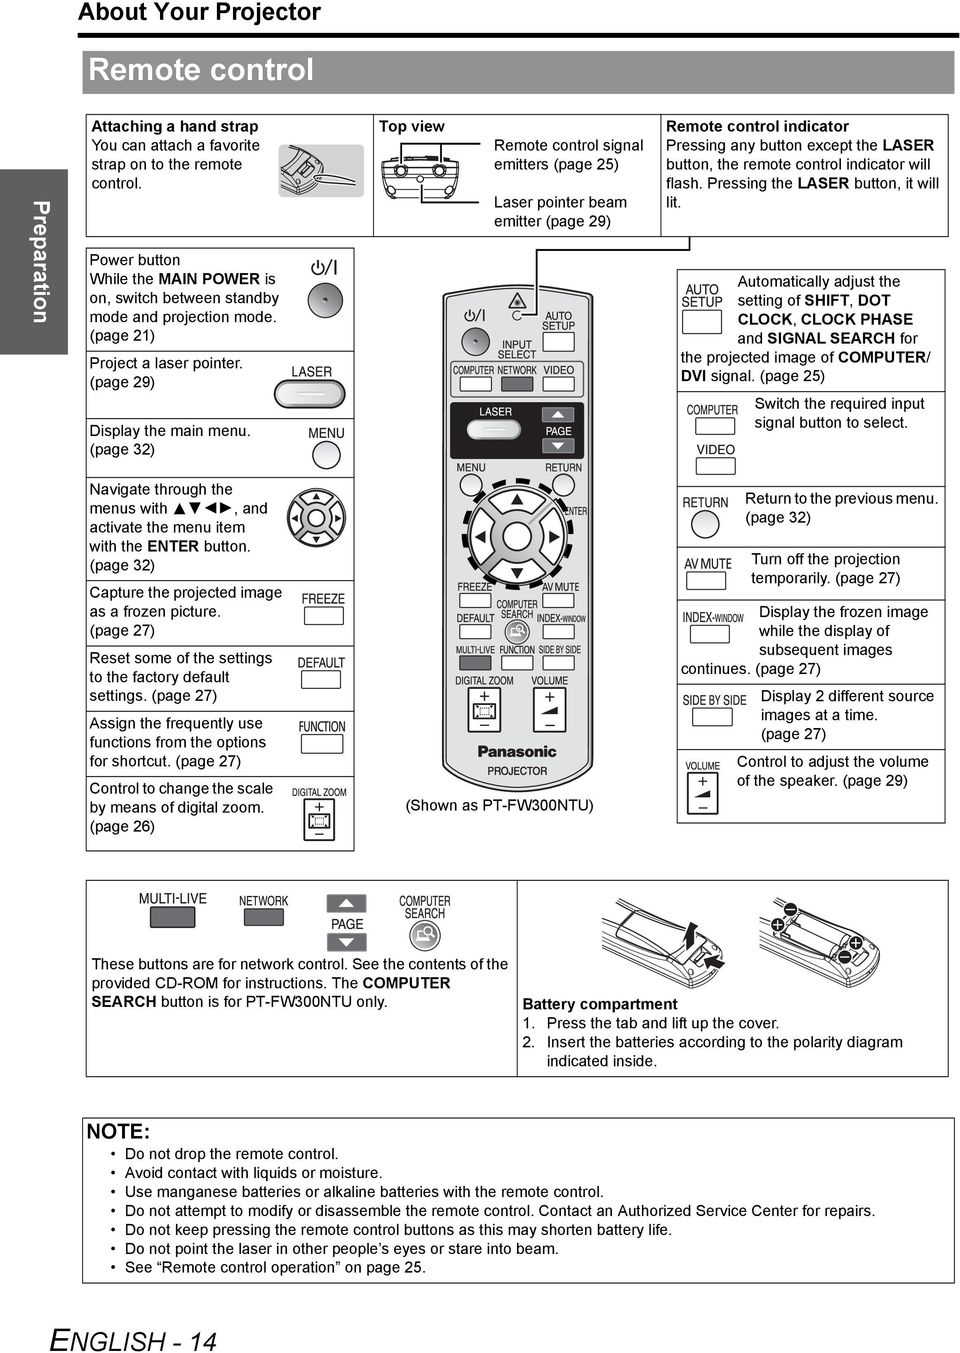 (page 32) Top view Remote control signal emitters (page 25) Laser pointer beam emitter (page 29) Remote control indicator Pressing any button except the LASER button, the remote control indicator